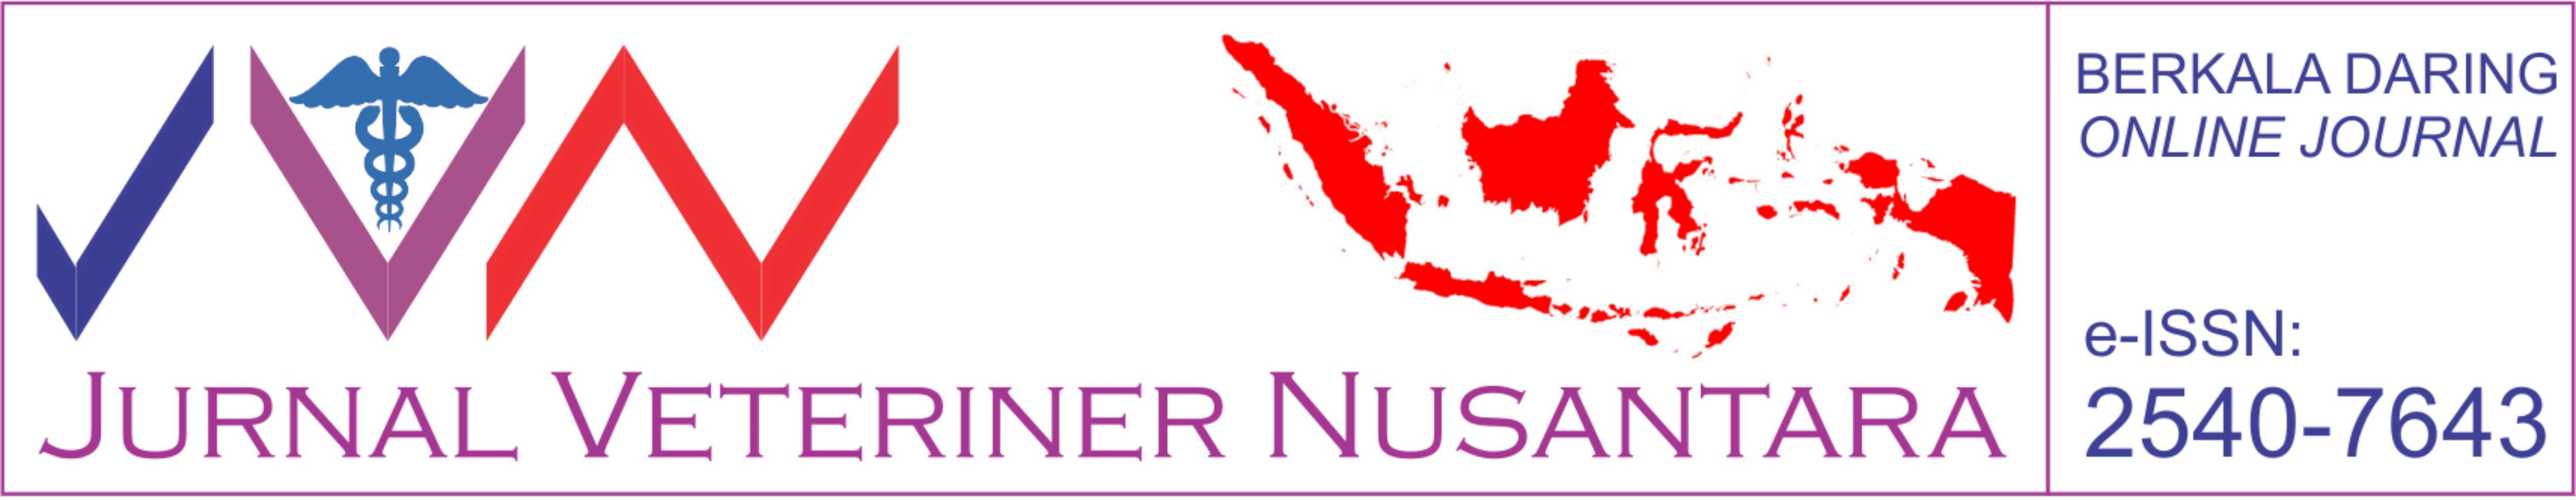 JURNAL VETERINER NUSANTARA